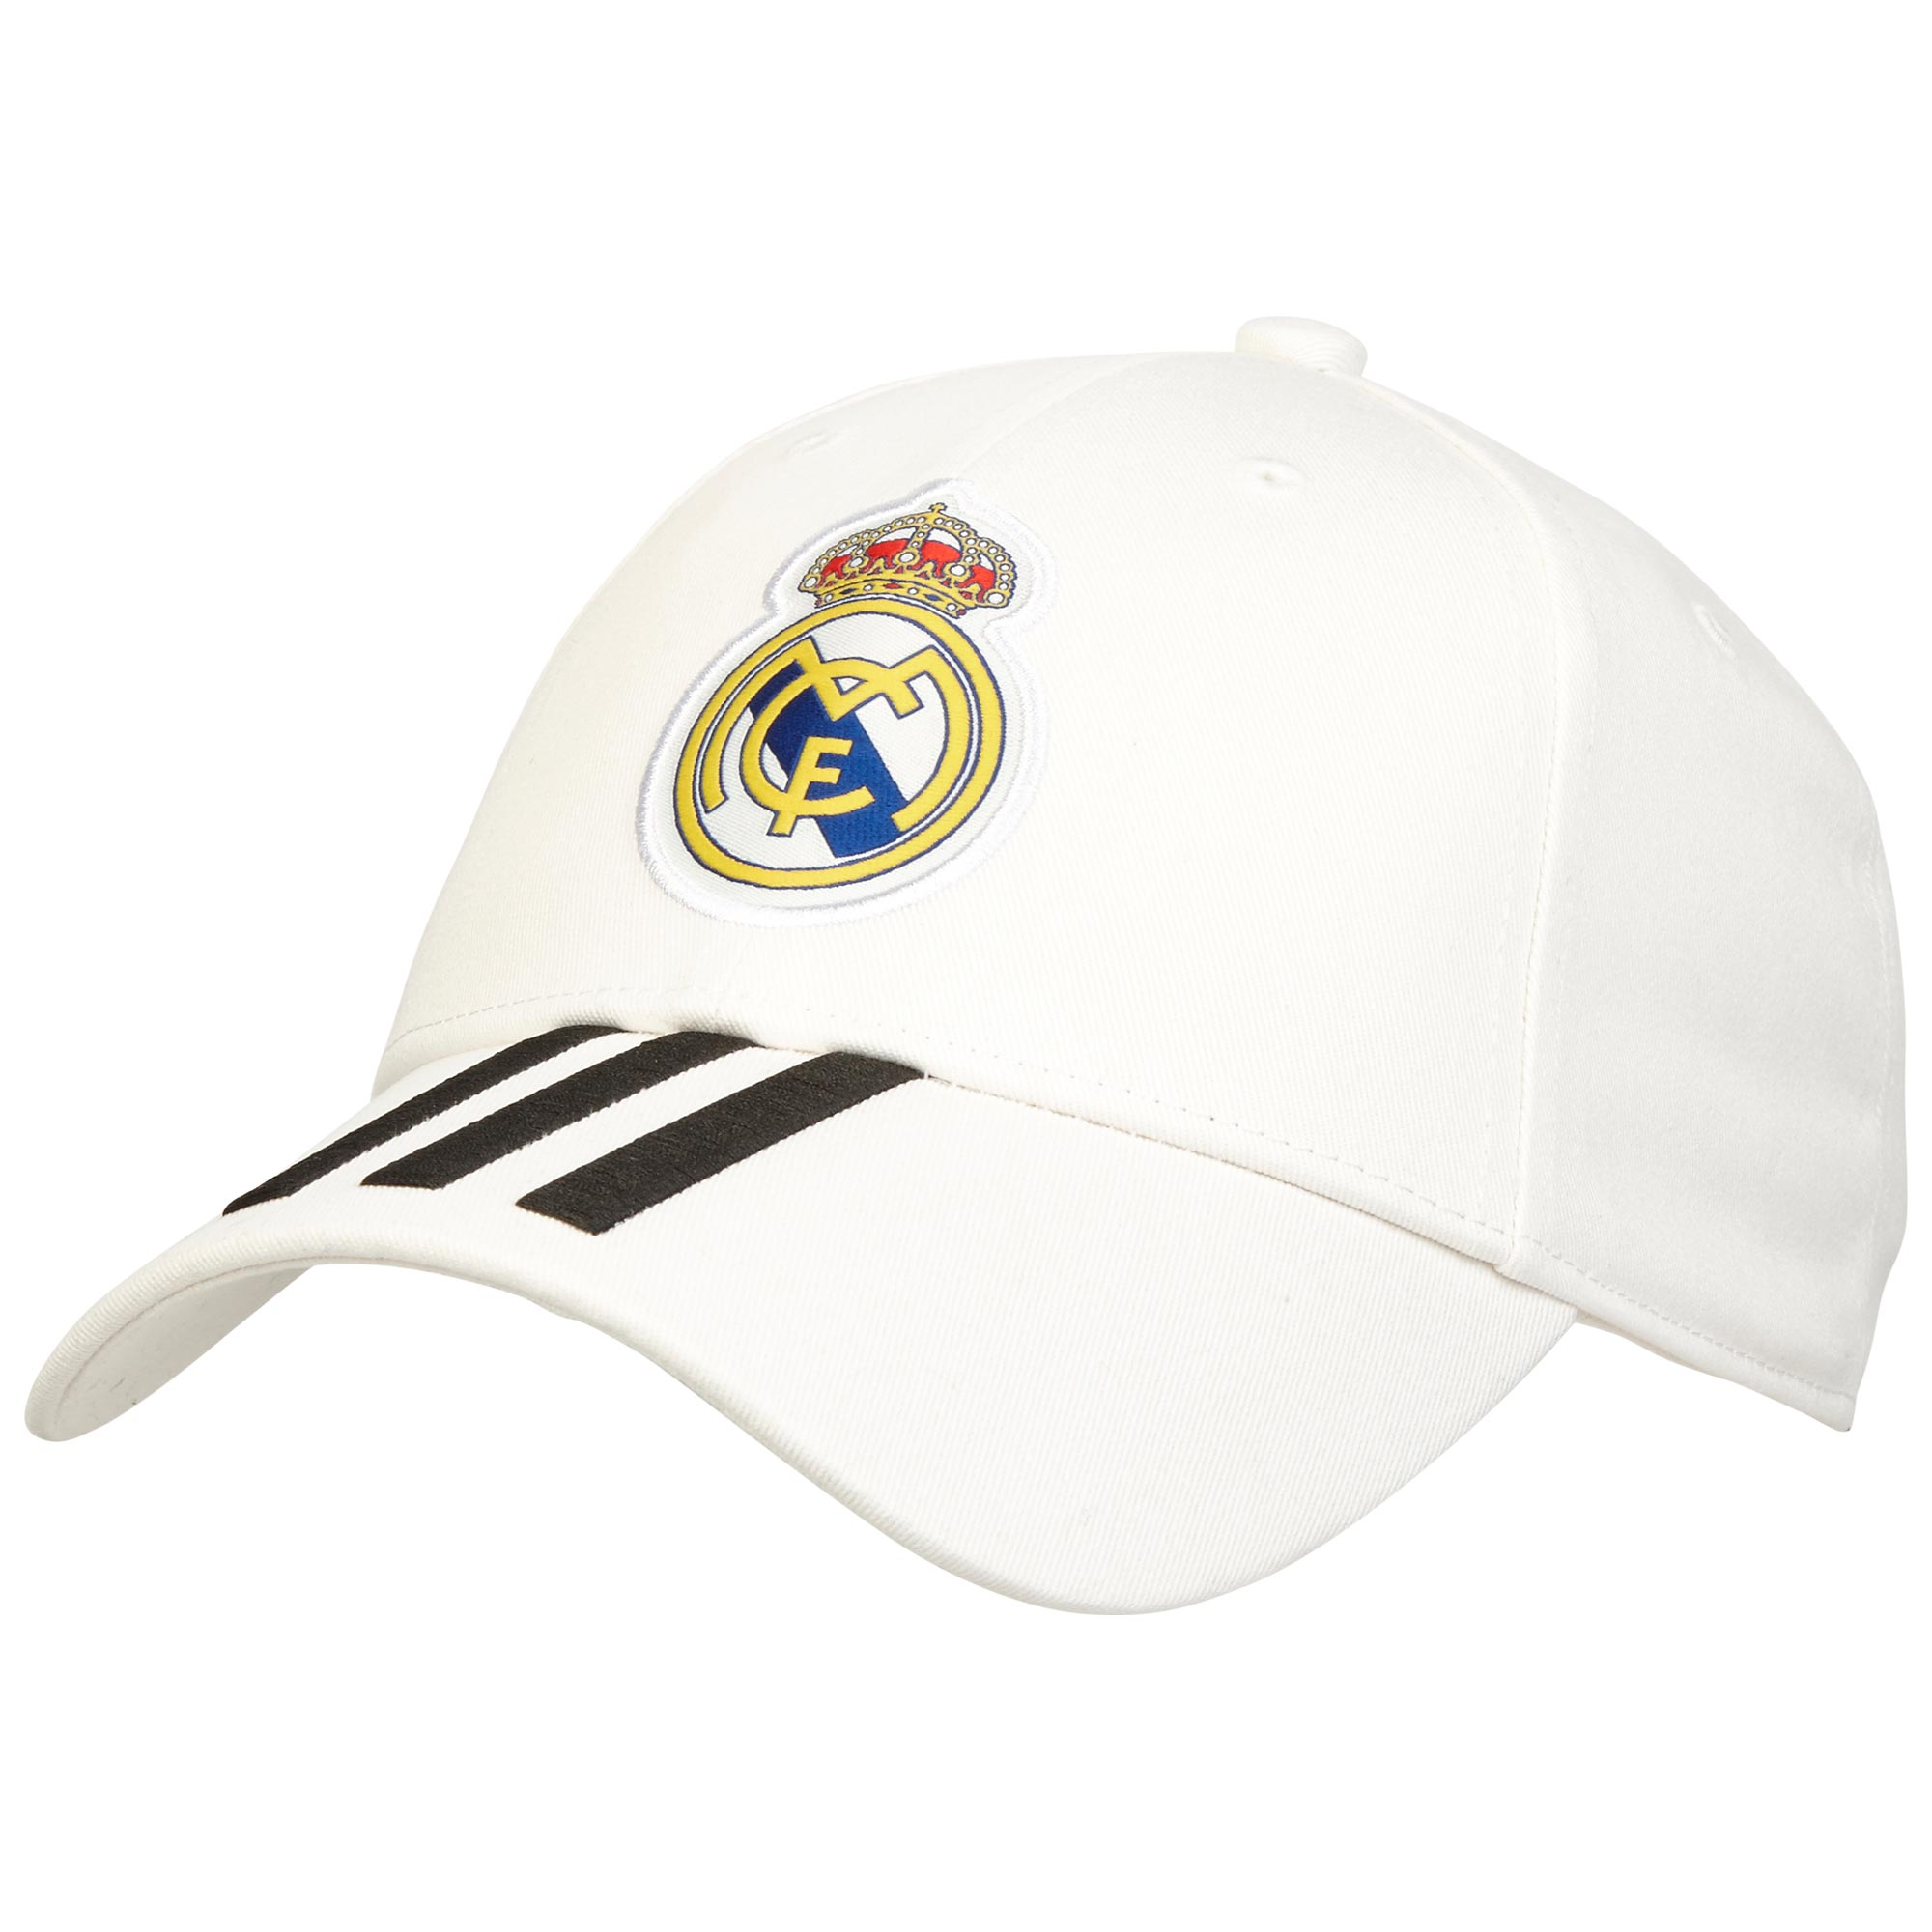 Casquette 3 bandes Real Madrid - Blanc